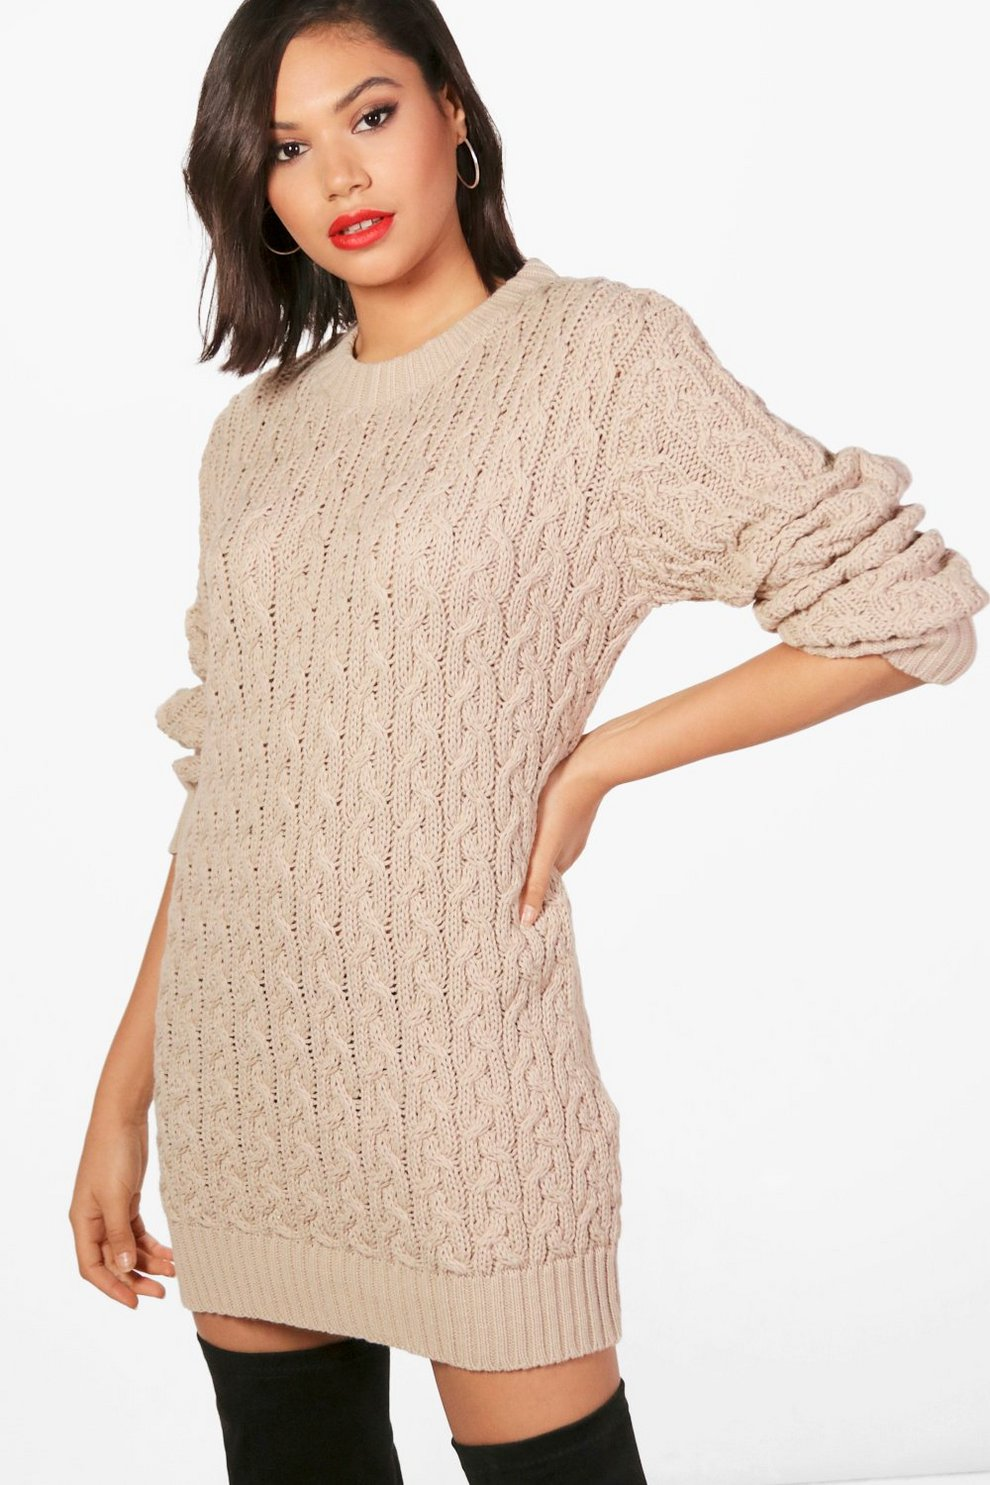 Full Cable Knit Jumper Dress Boohoo